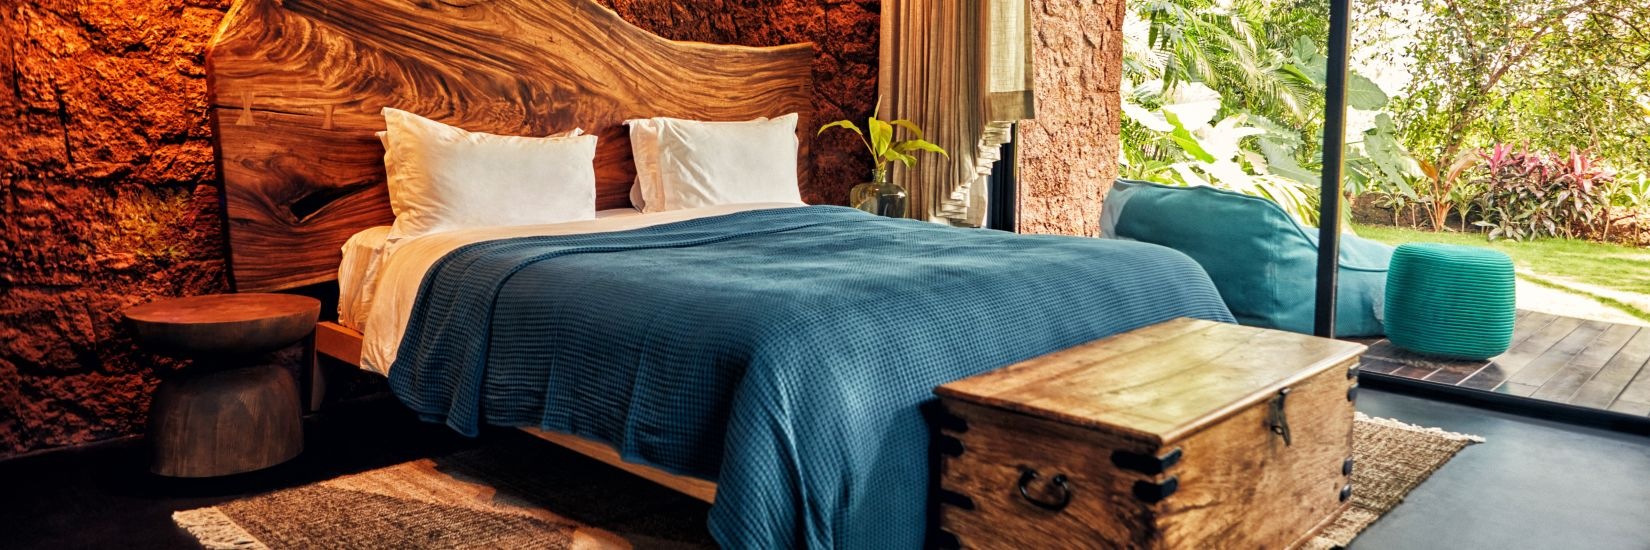 King size bed with blue covers at the private villa in Goa - Villa in Palms by Vescapes